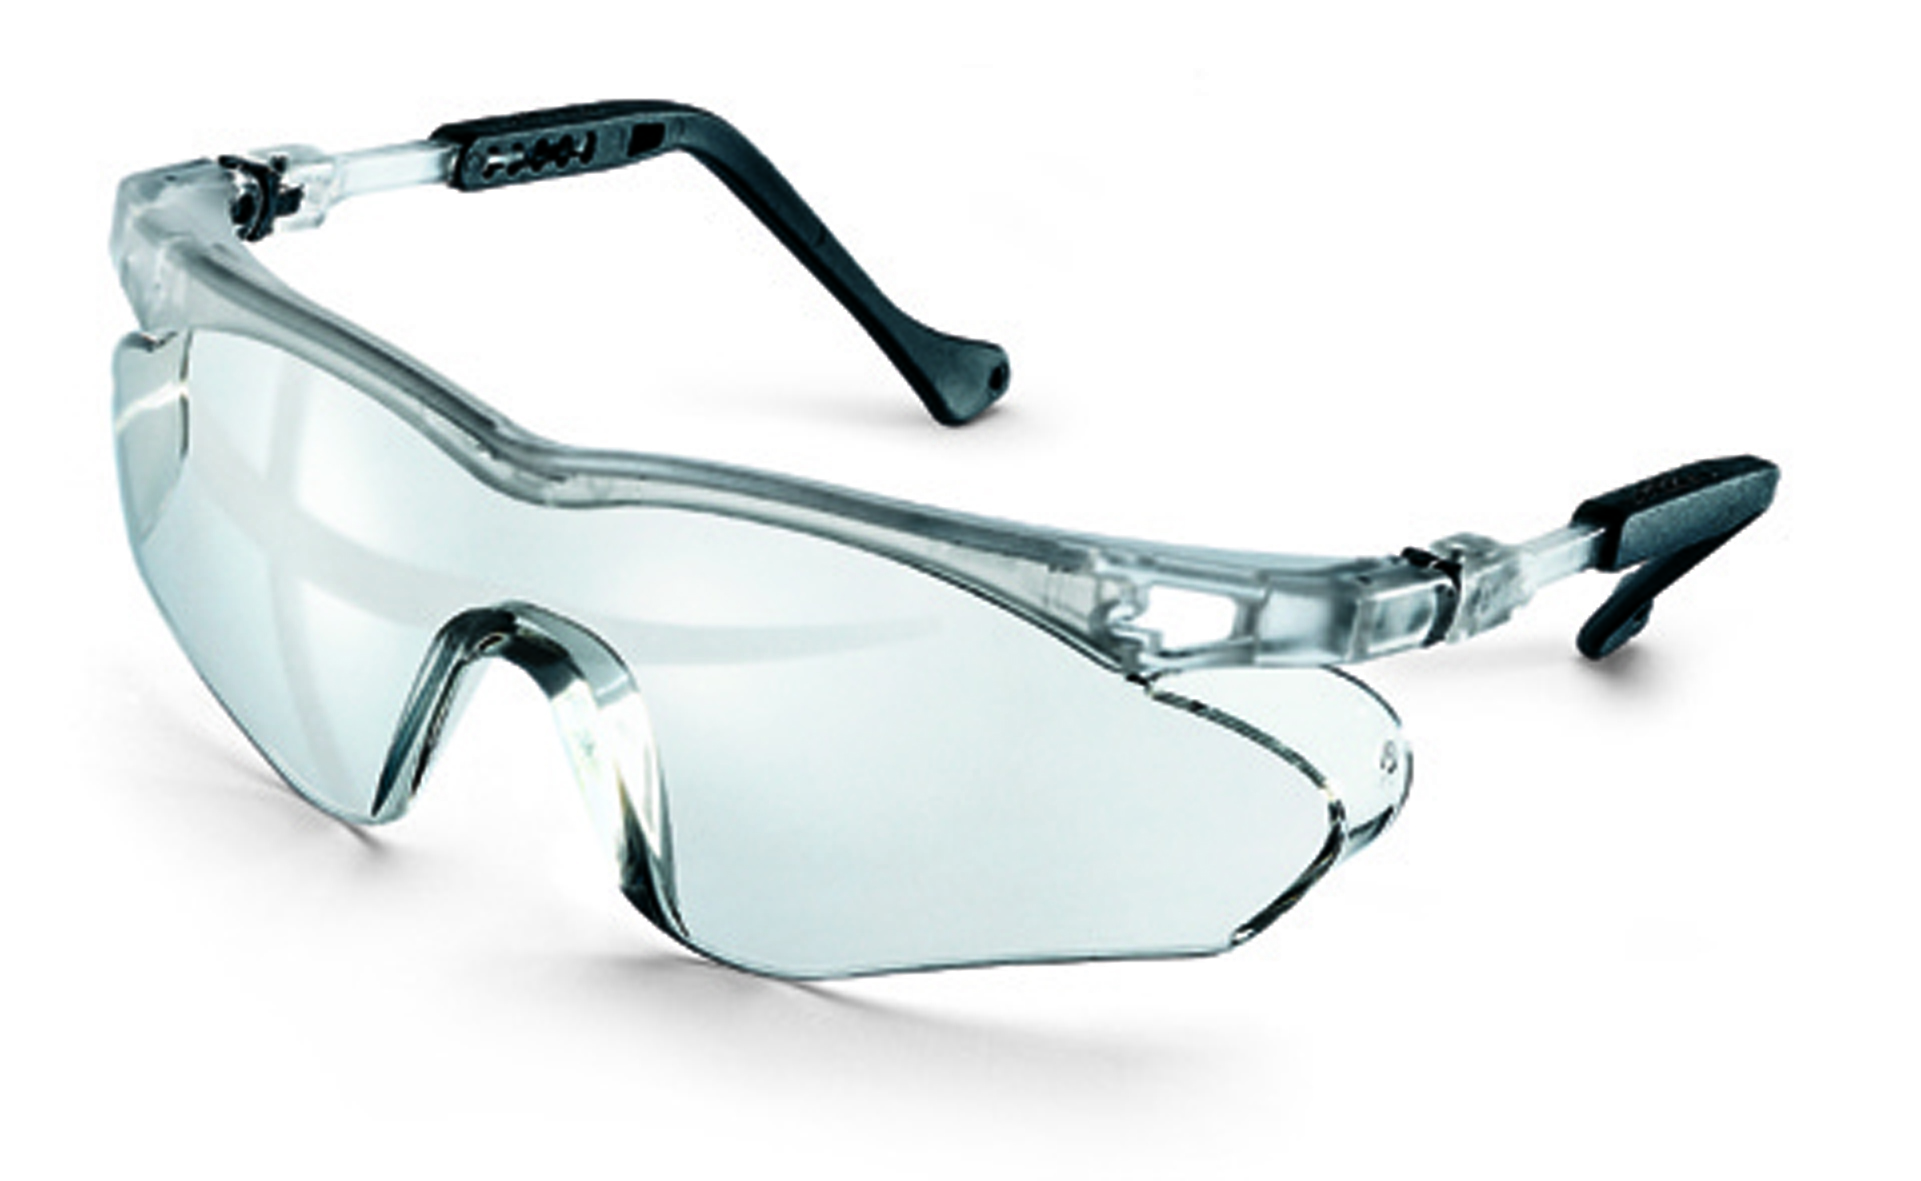 bodyguard-Glasses-Uvex-Skybrite-SX2-Safety-Spectacles